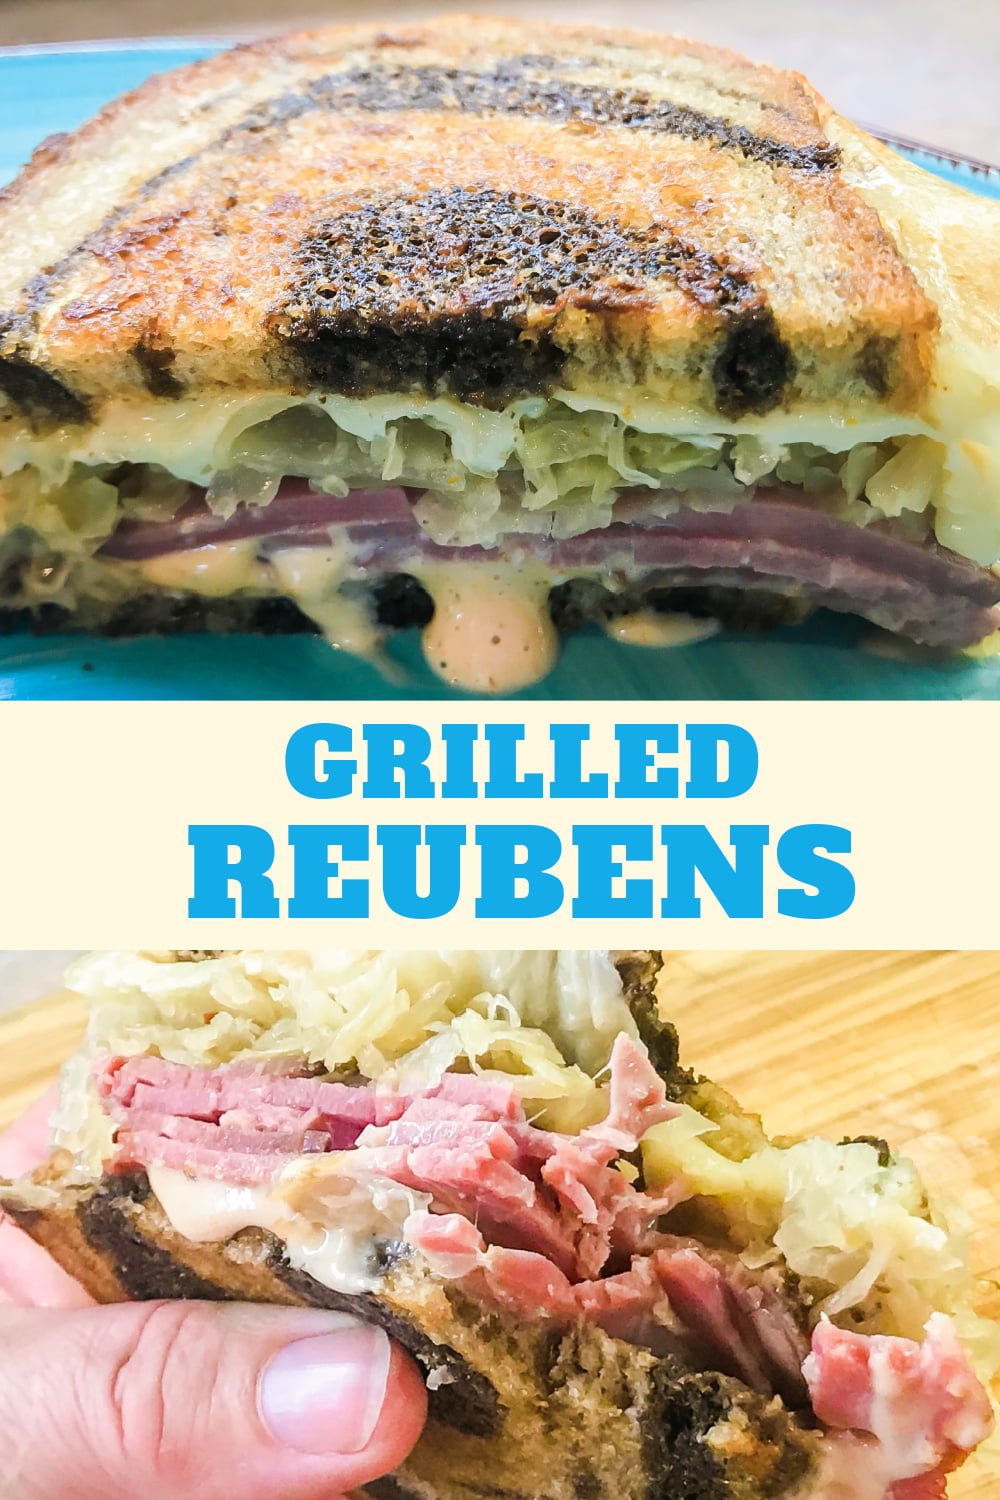 Upclose shots of Grilled Reuben Sandwiches.